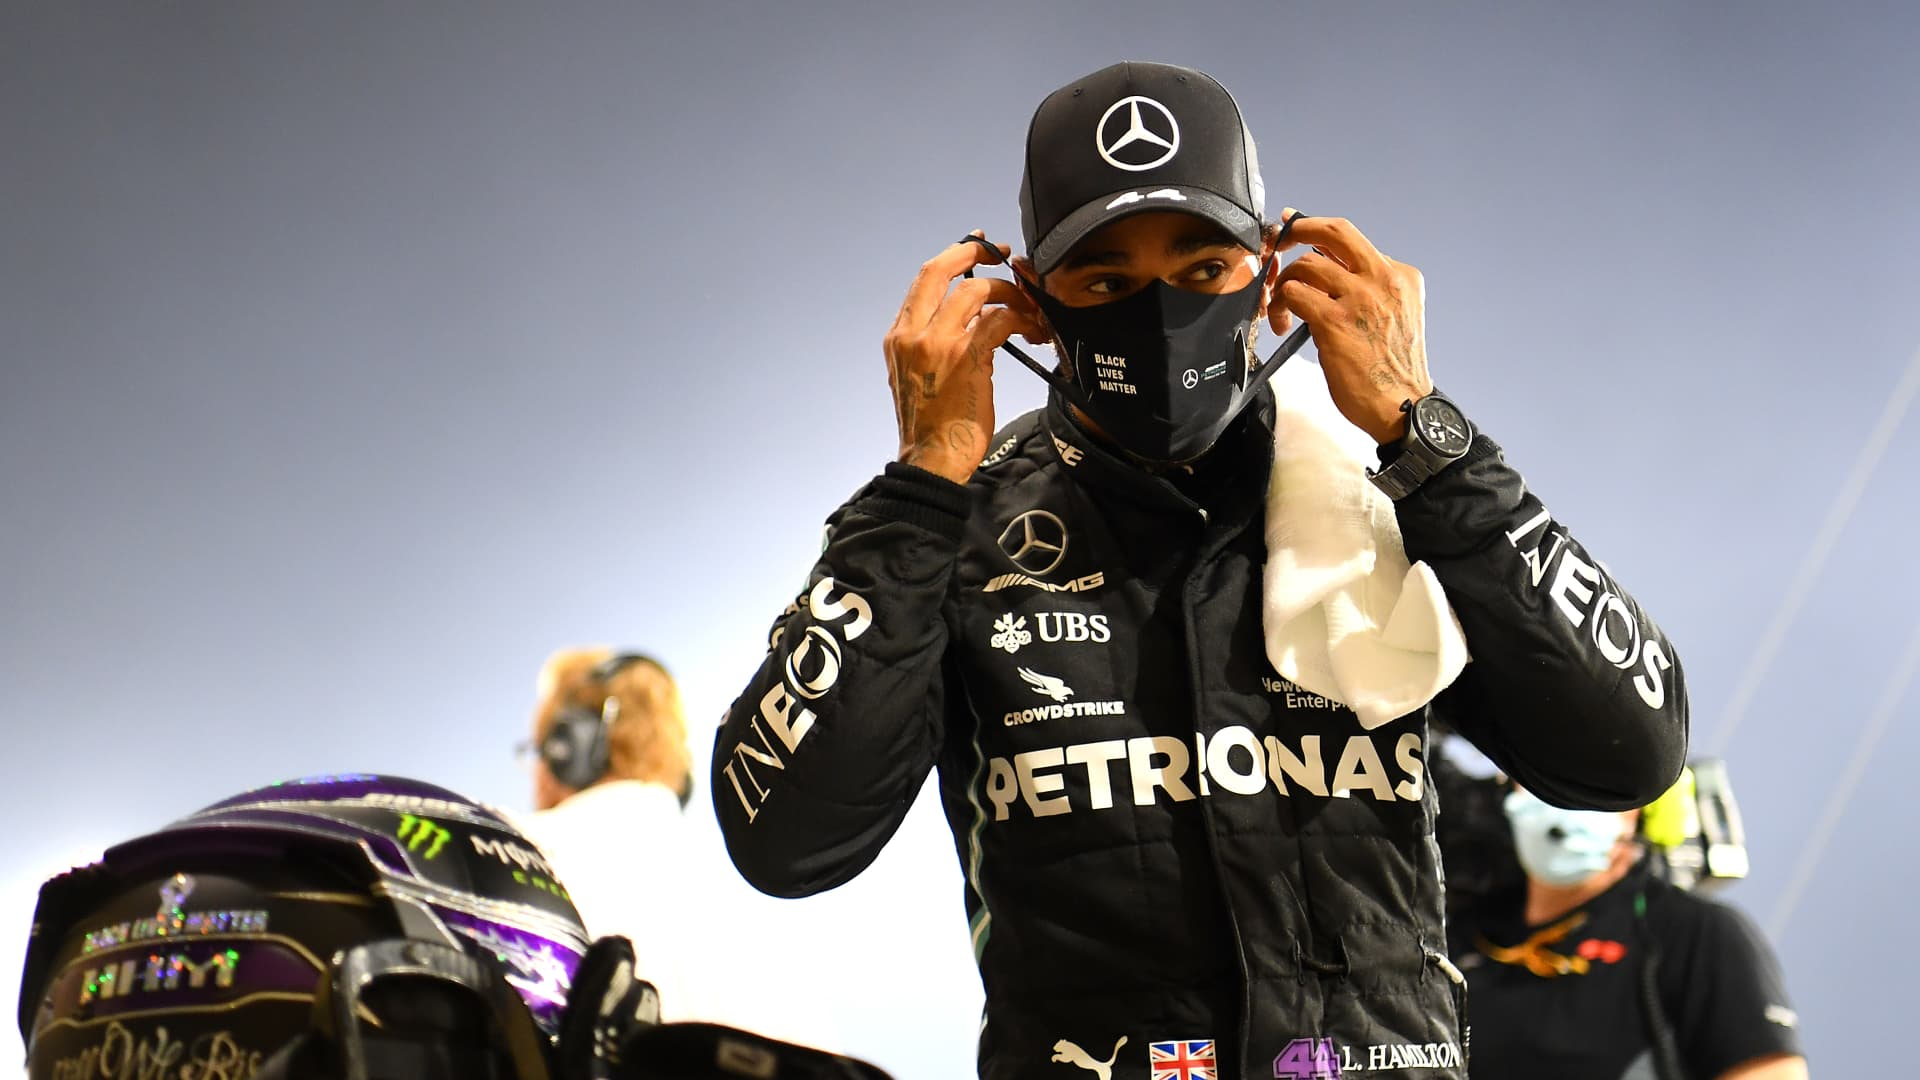 Race winner Lewis Hamilton of Great Britain and Mercedes GP looks on in parc ferme during the F1 Grand Prix of Bahrain at Bahrain International Circuit on November 29, 2020 in Bahrain, Bahrain.